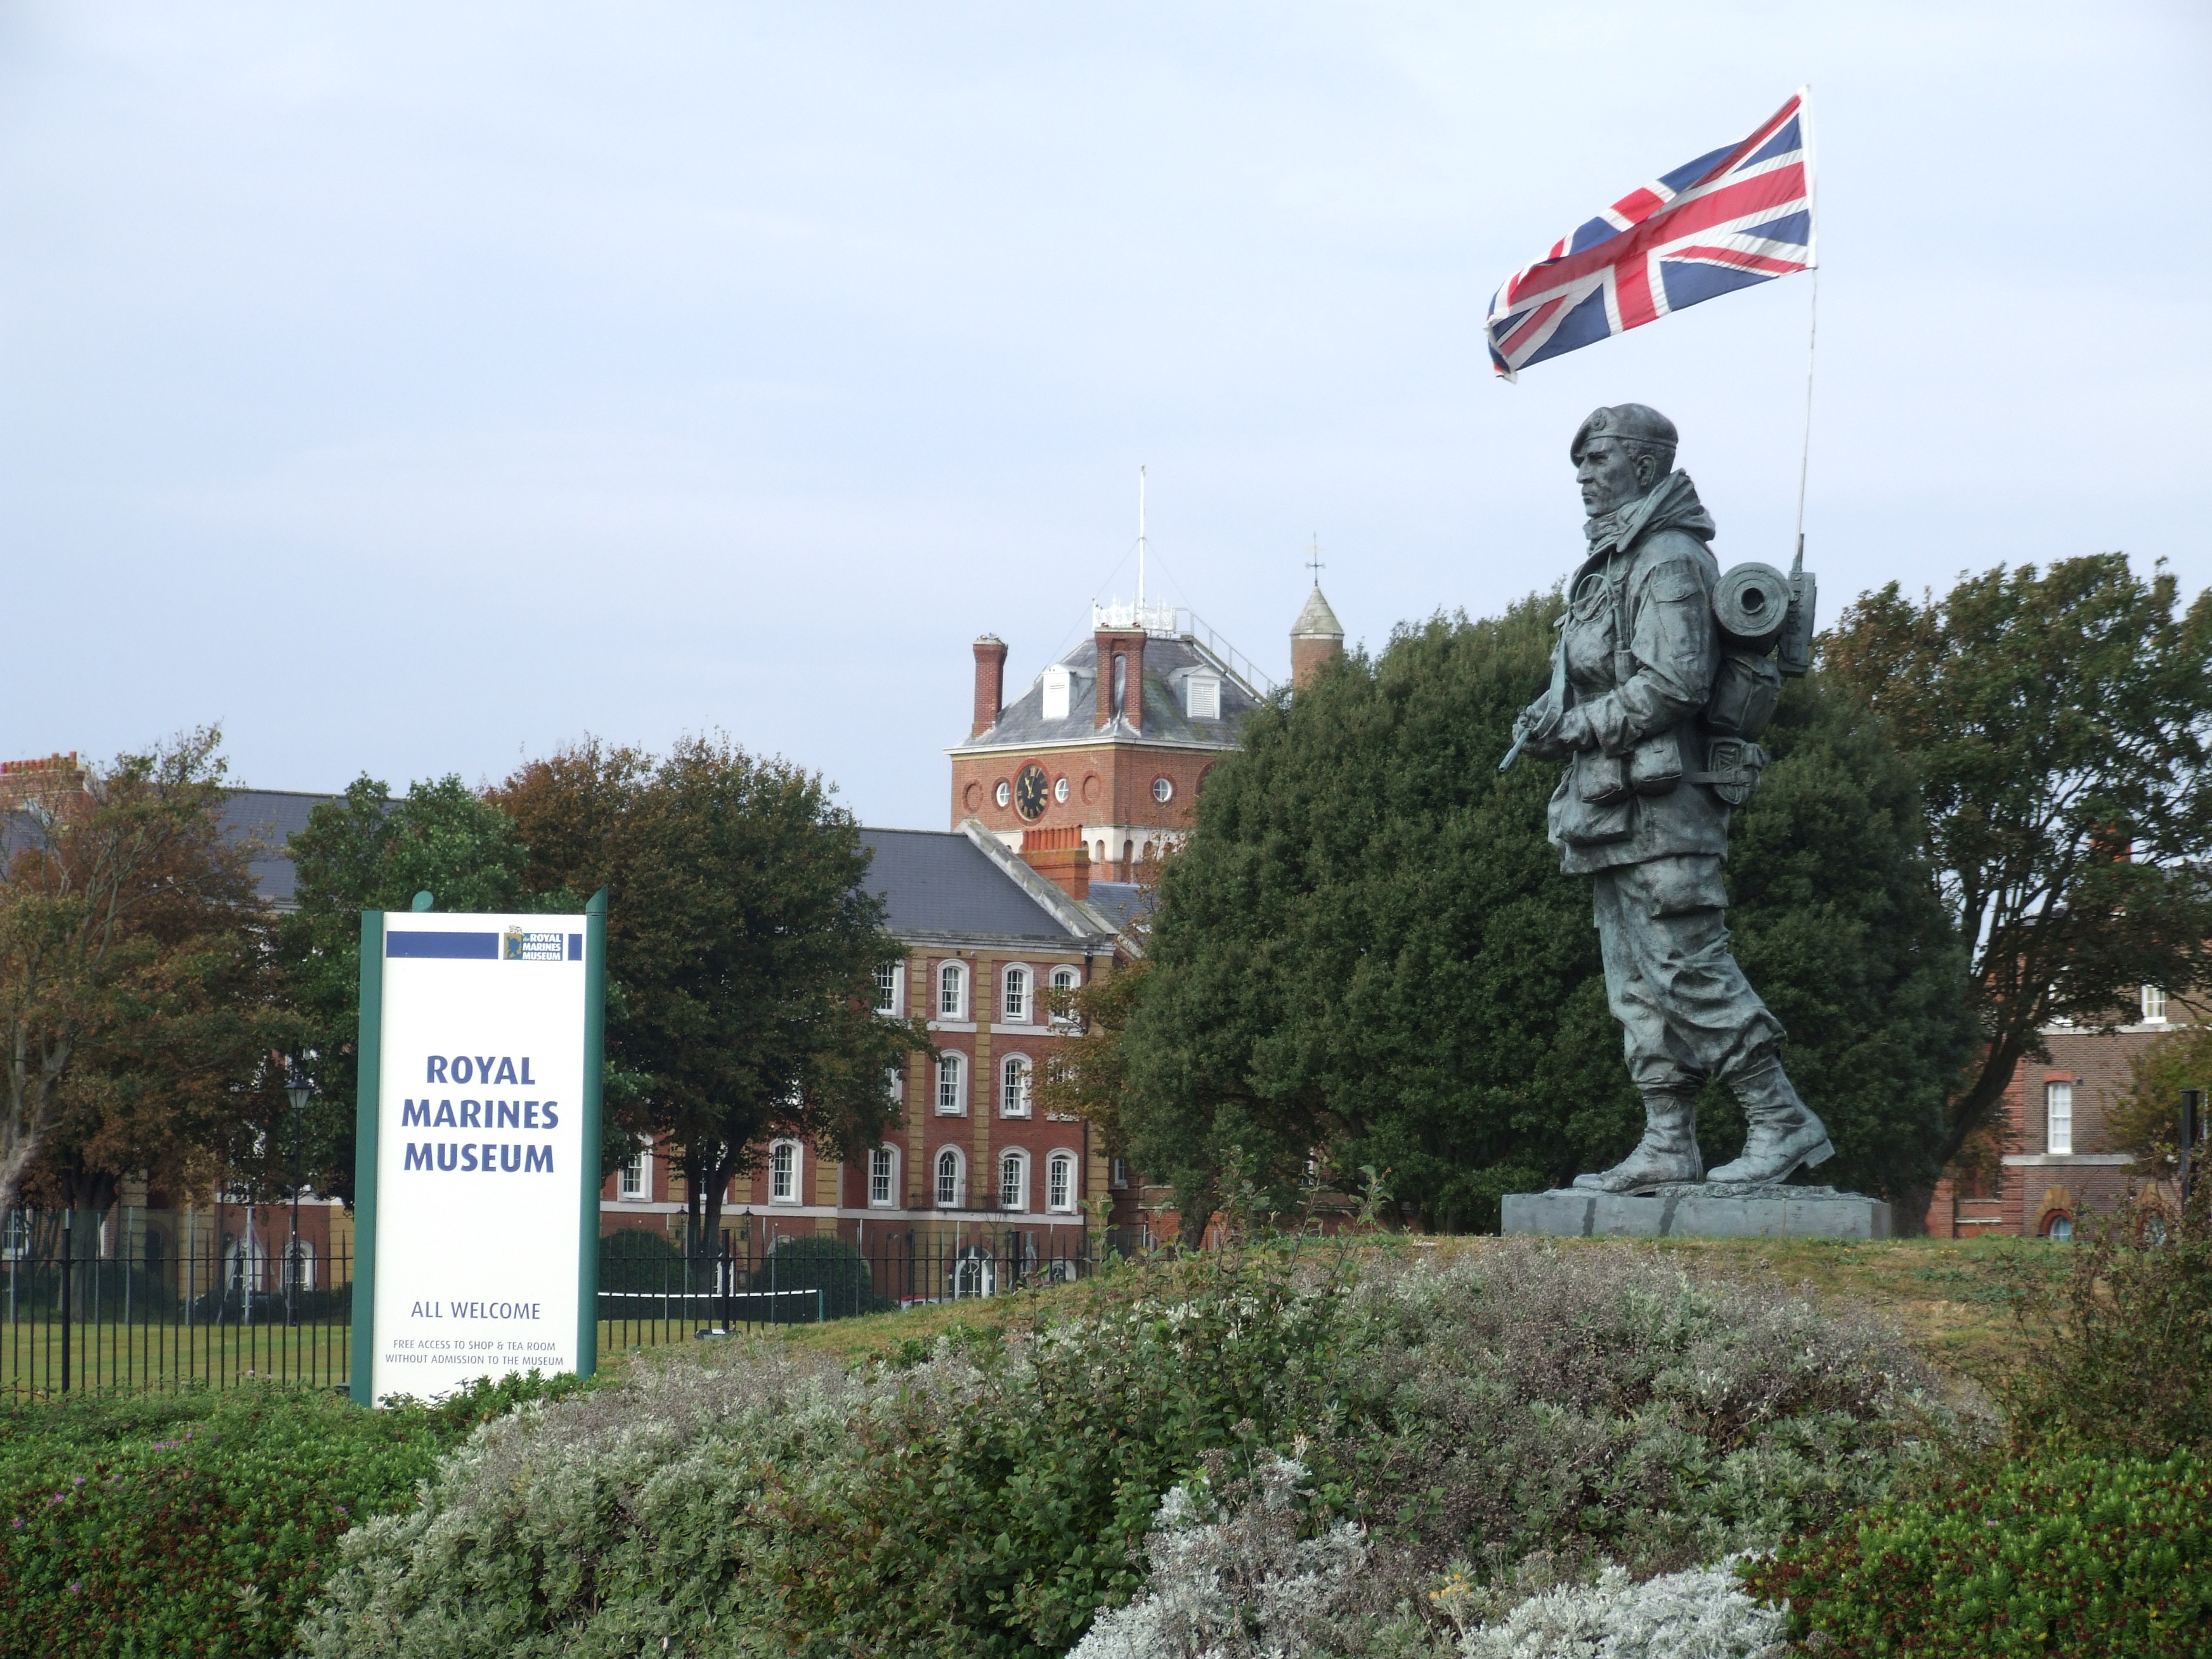 http://upload.wikimedia.org/wikipedia/commons/9/94/The_Yomper_Falklands_memorial_statue,_Royal_Marines_Museum,_Portsmouth_(1).jpg